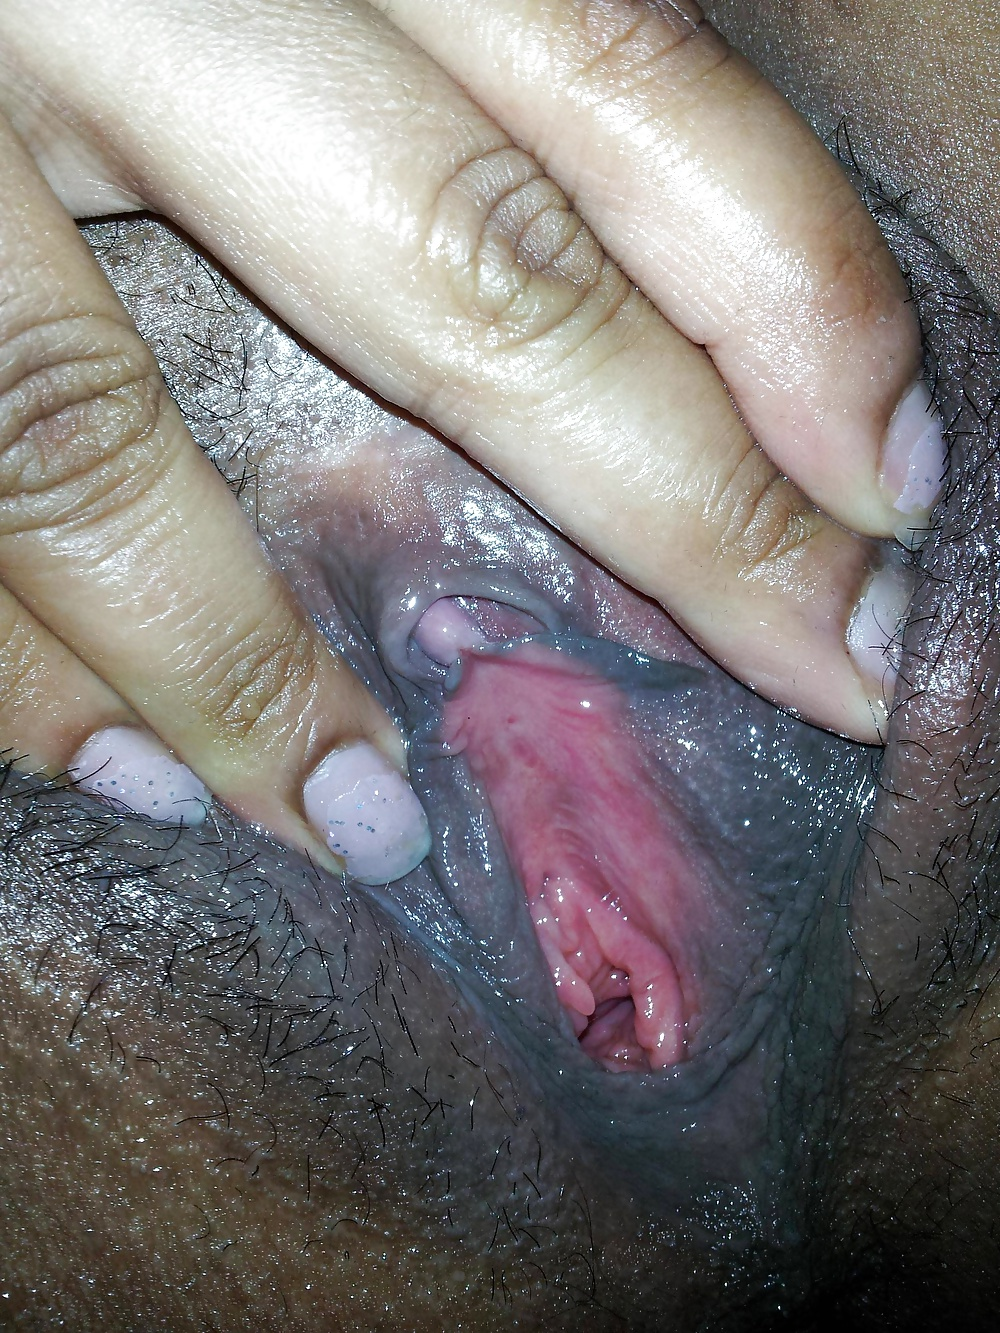 You wanted more of my pussy, so here you go :) adult photos